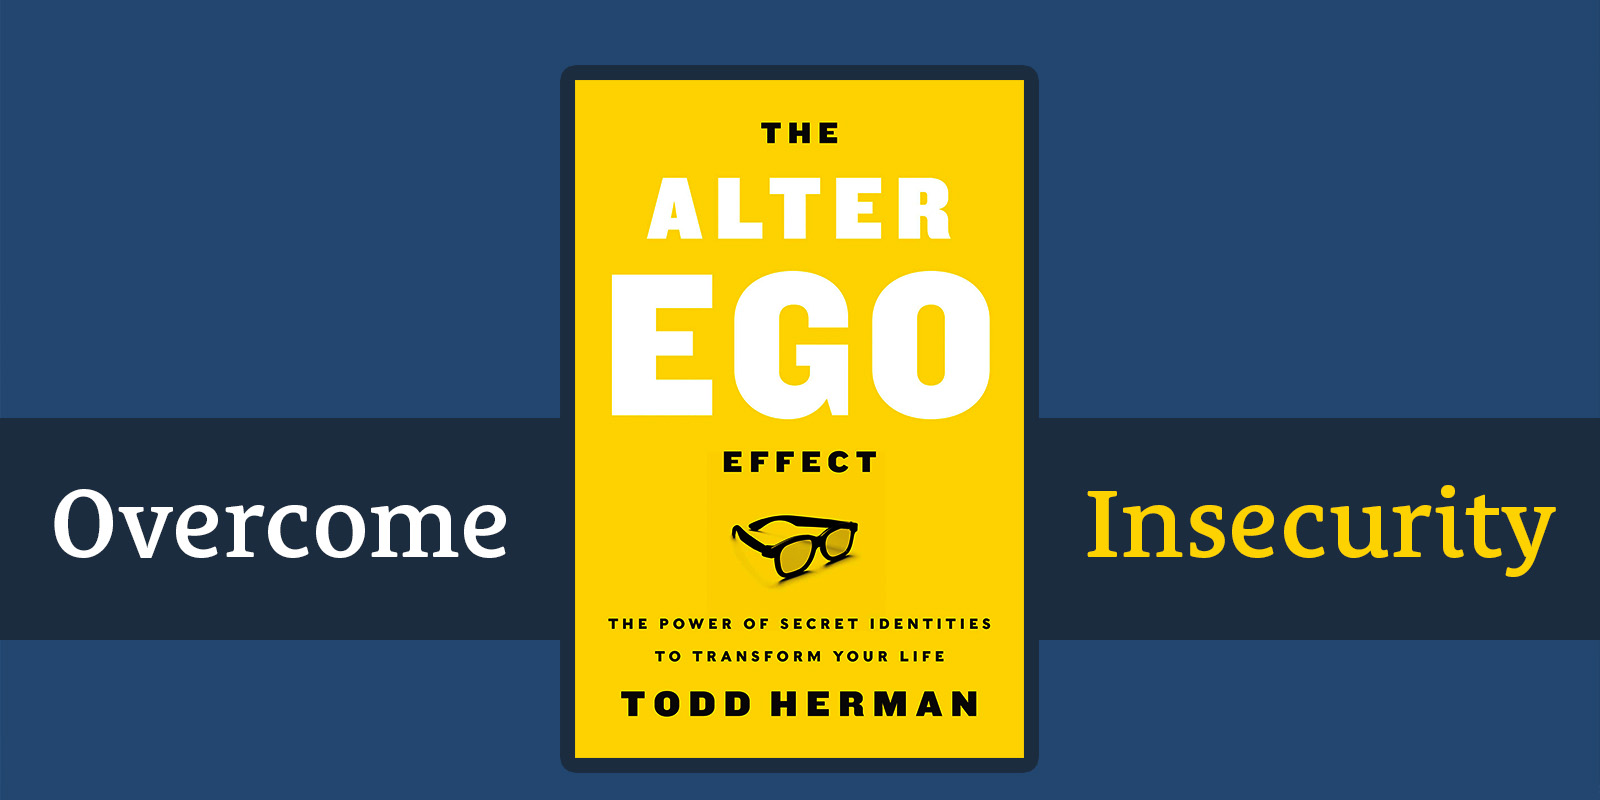 Overcome Insecurity and Imposter Syndrome- The Alter Ego Effect With Todd Herman